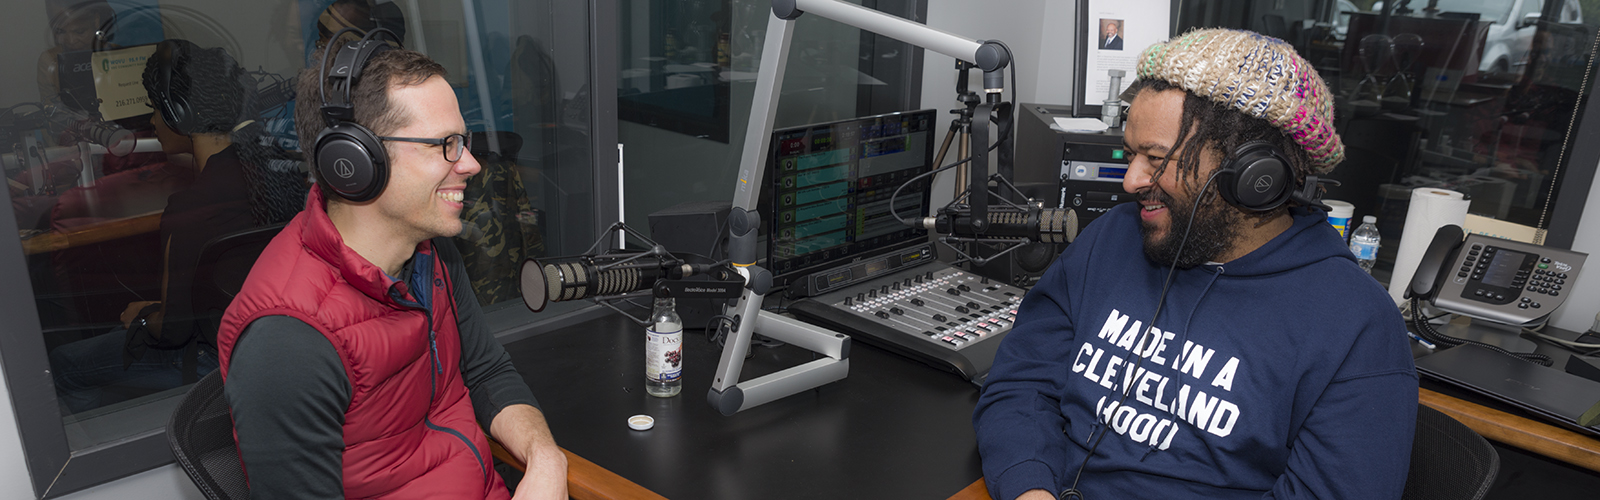 Justin Glanville and Julian Khan at WOVU 95.9 recording This Is Shaker Square: The Podcast <span class='image-credits'>Bob Perkoski</span>